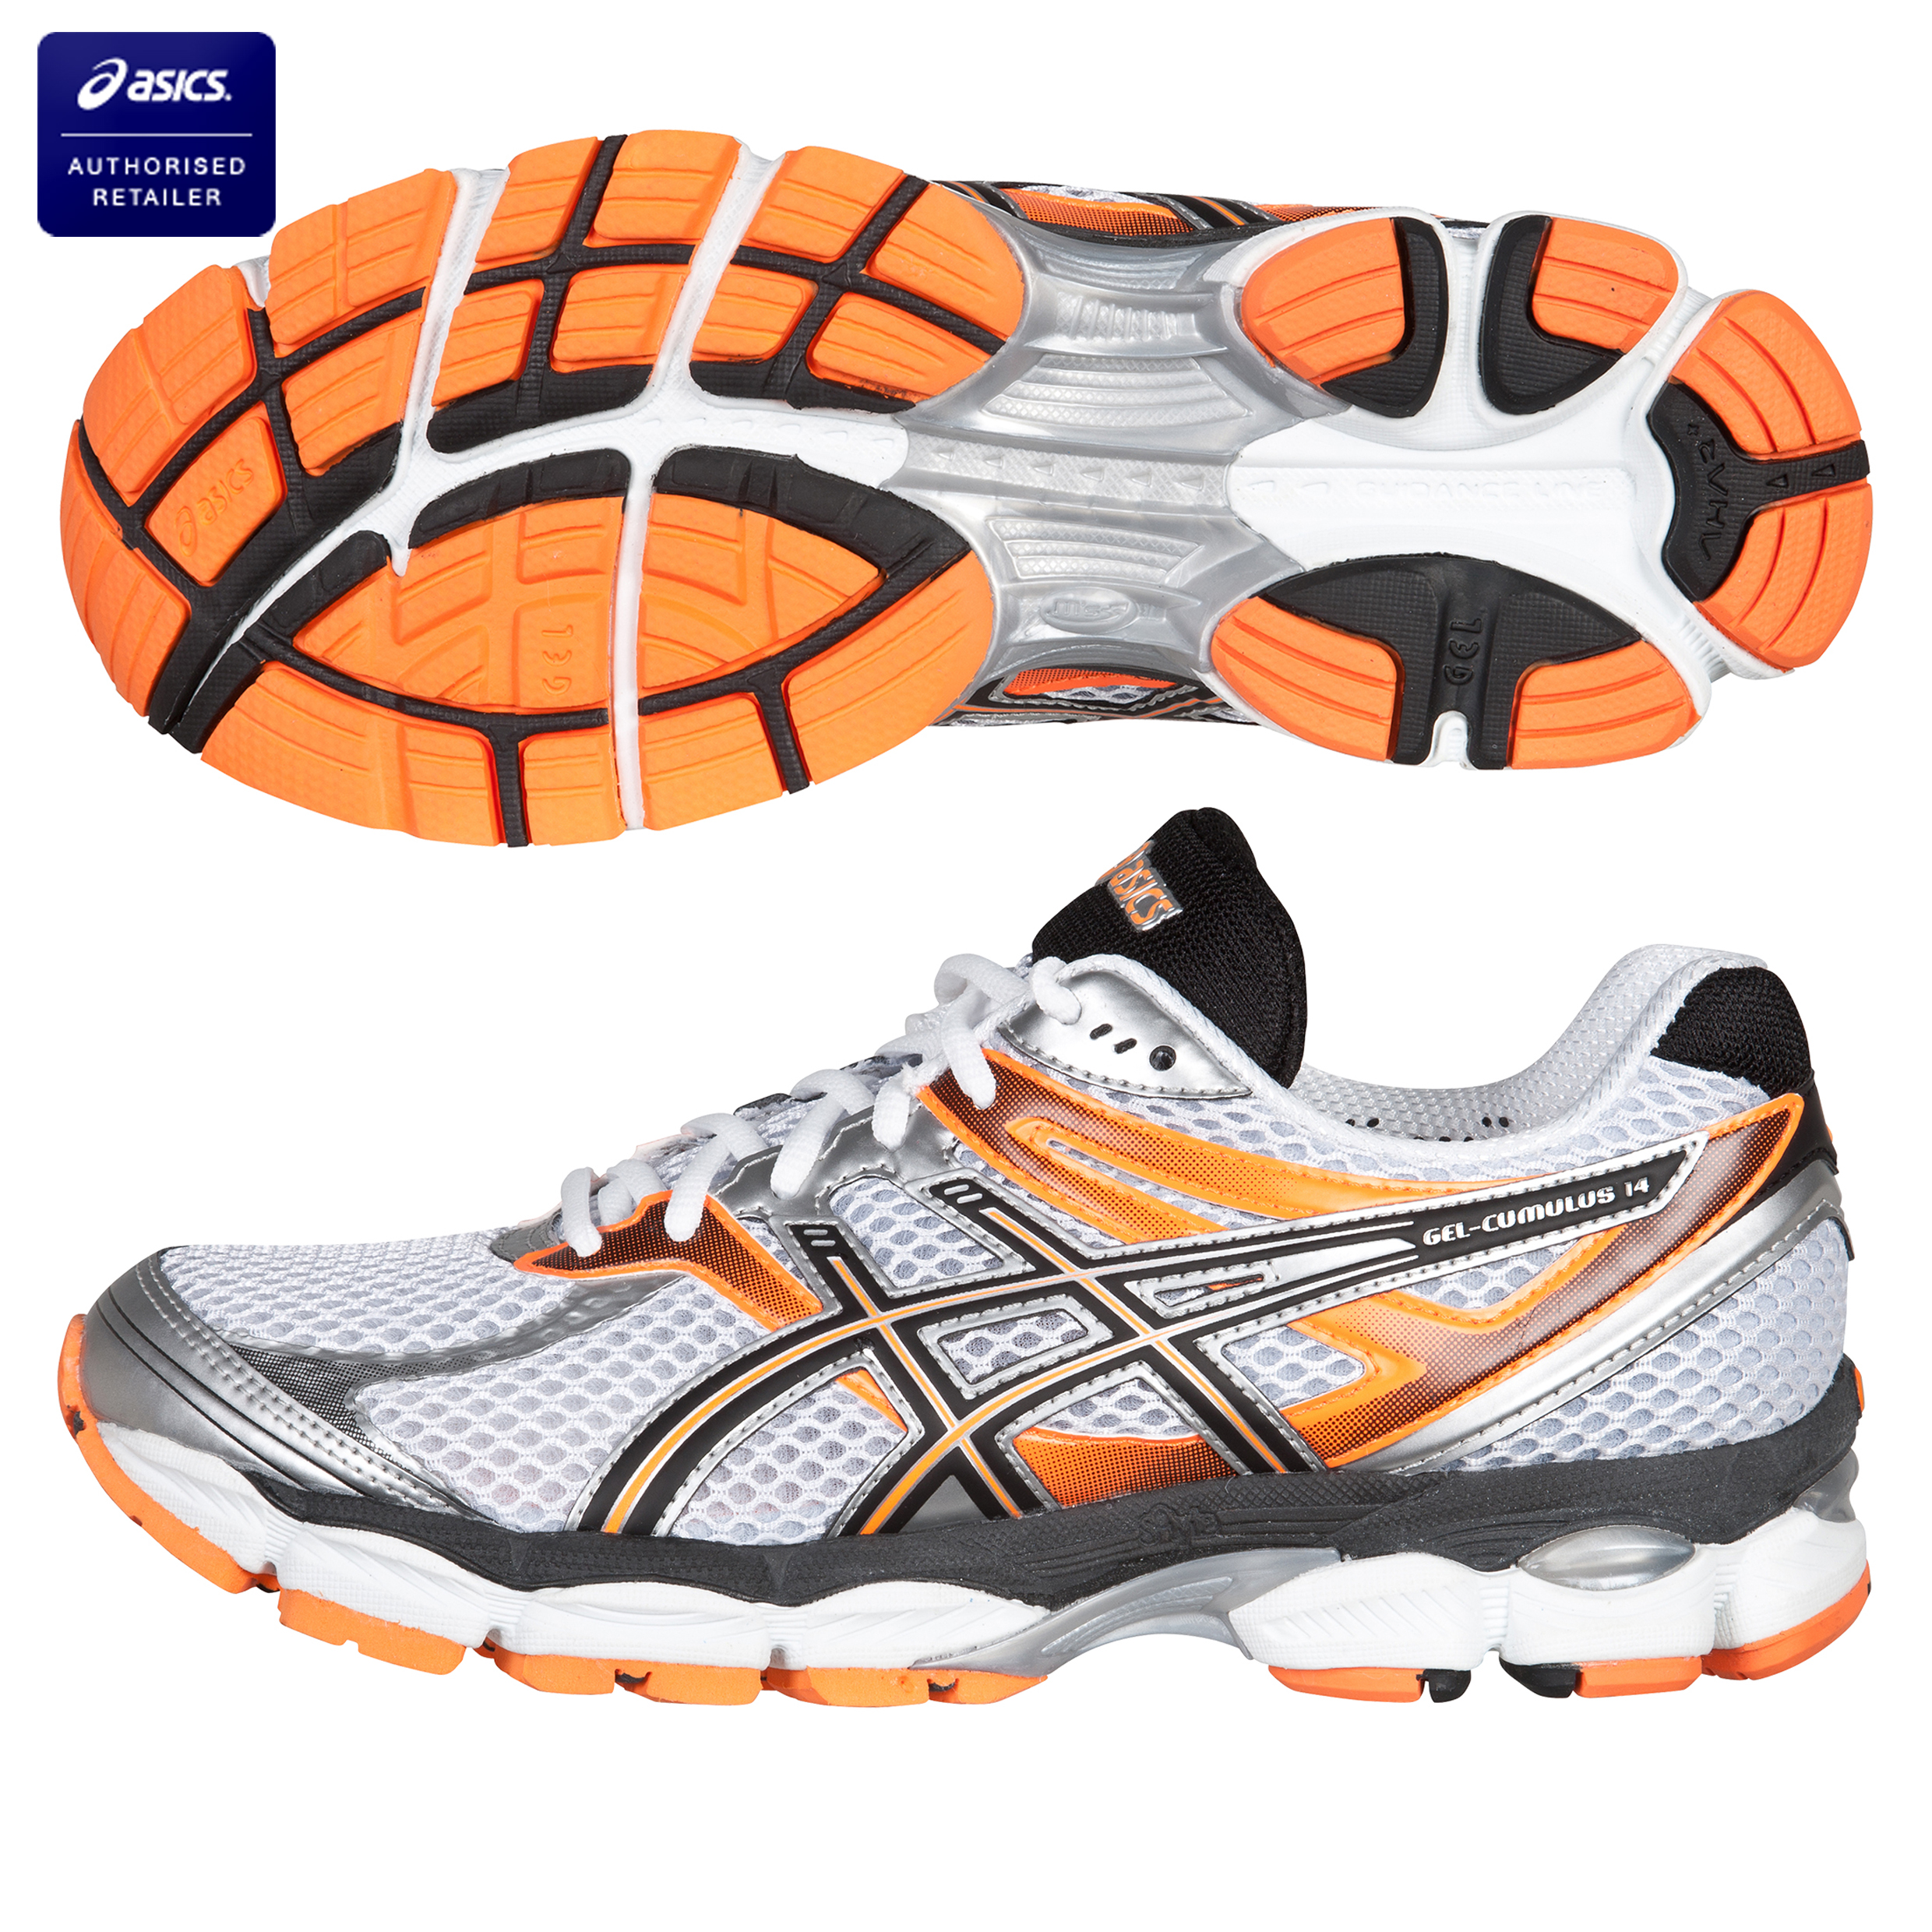 Asics Gel Cumulus 14 Neutral Running Trainers - White/Black/Neon Orange